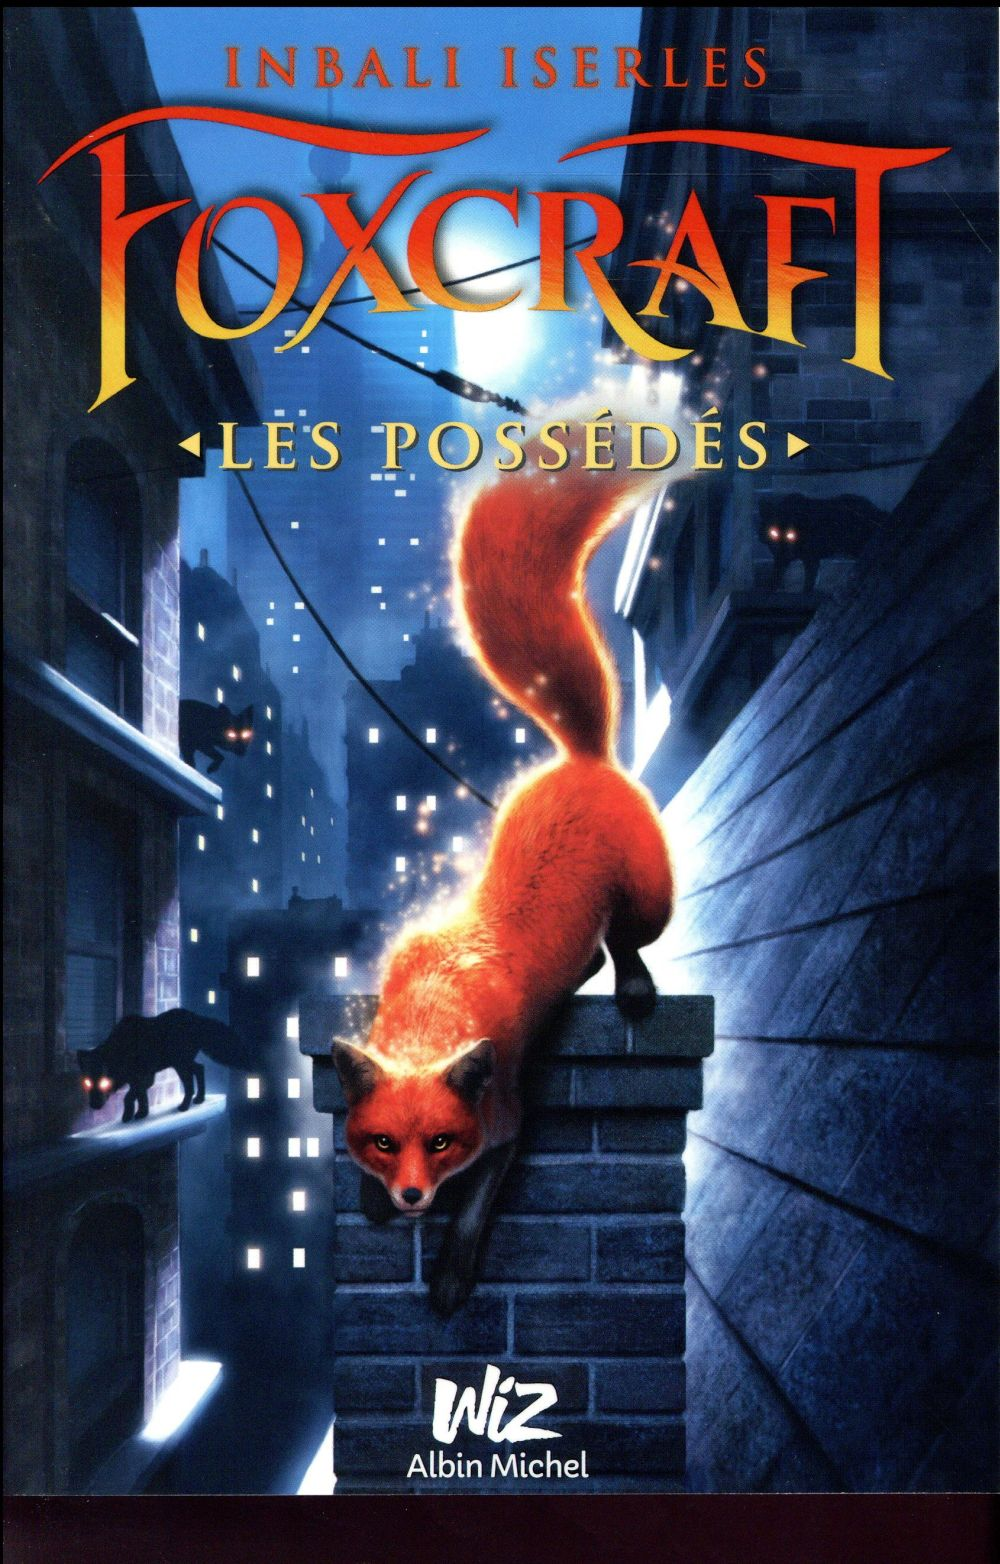 FOXCRAFT - TOME 1